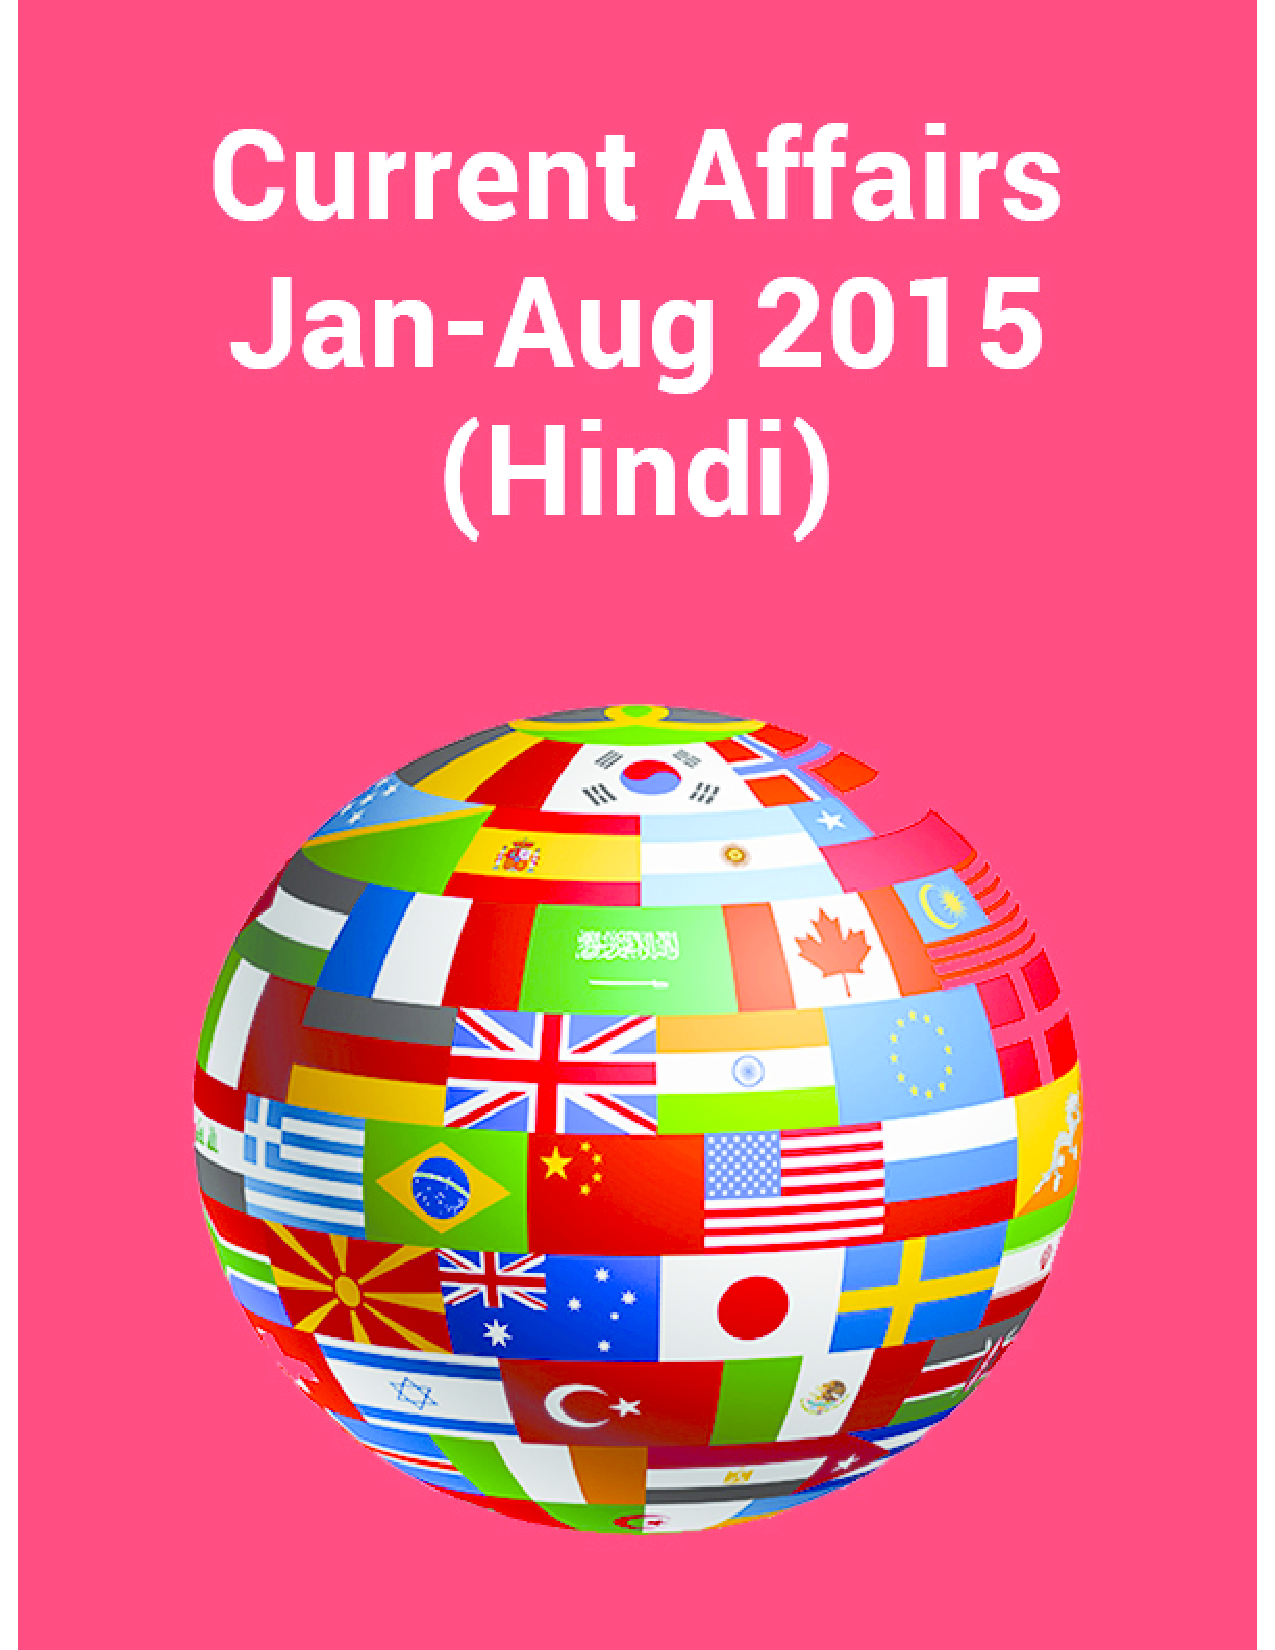 Current Affairs Jan-Aug 2015 (Hindi) - Page 1